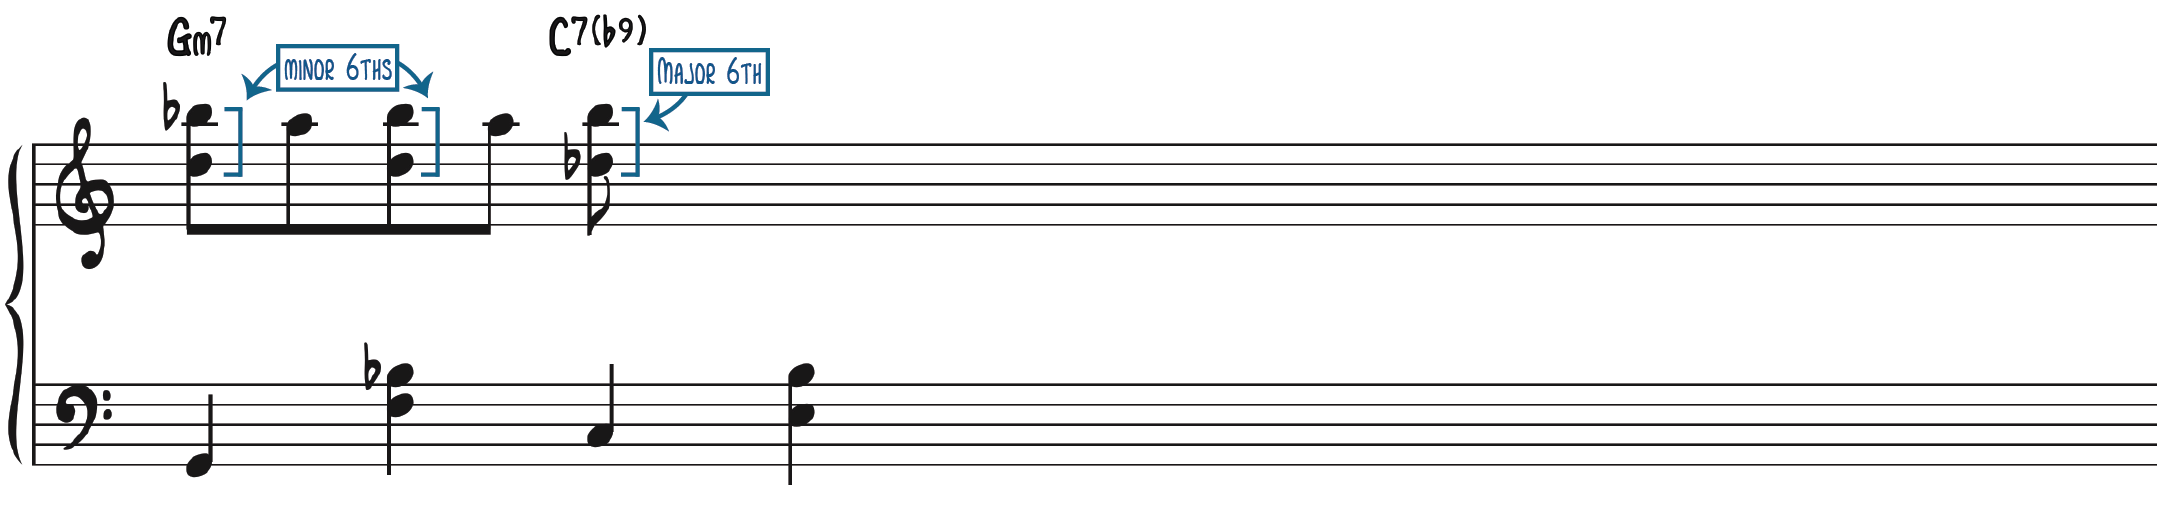 Melodic Harmonization with 6ths